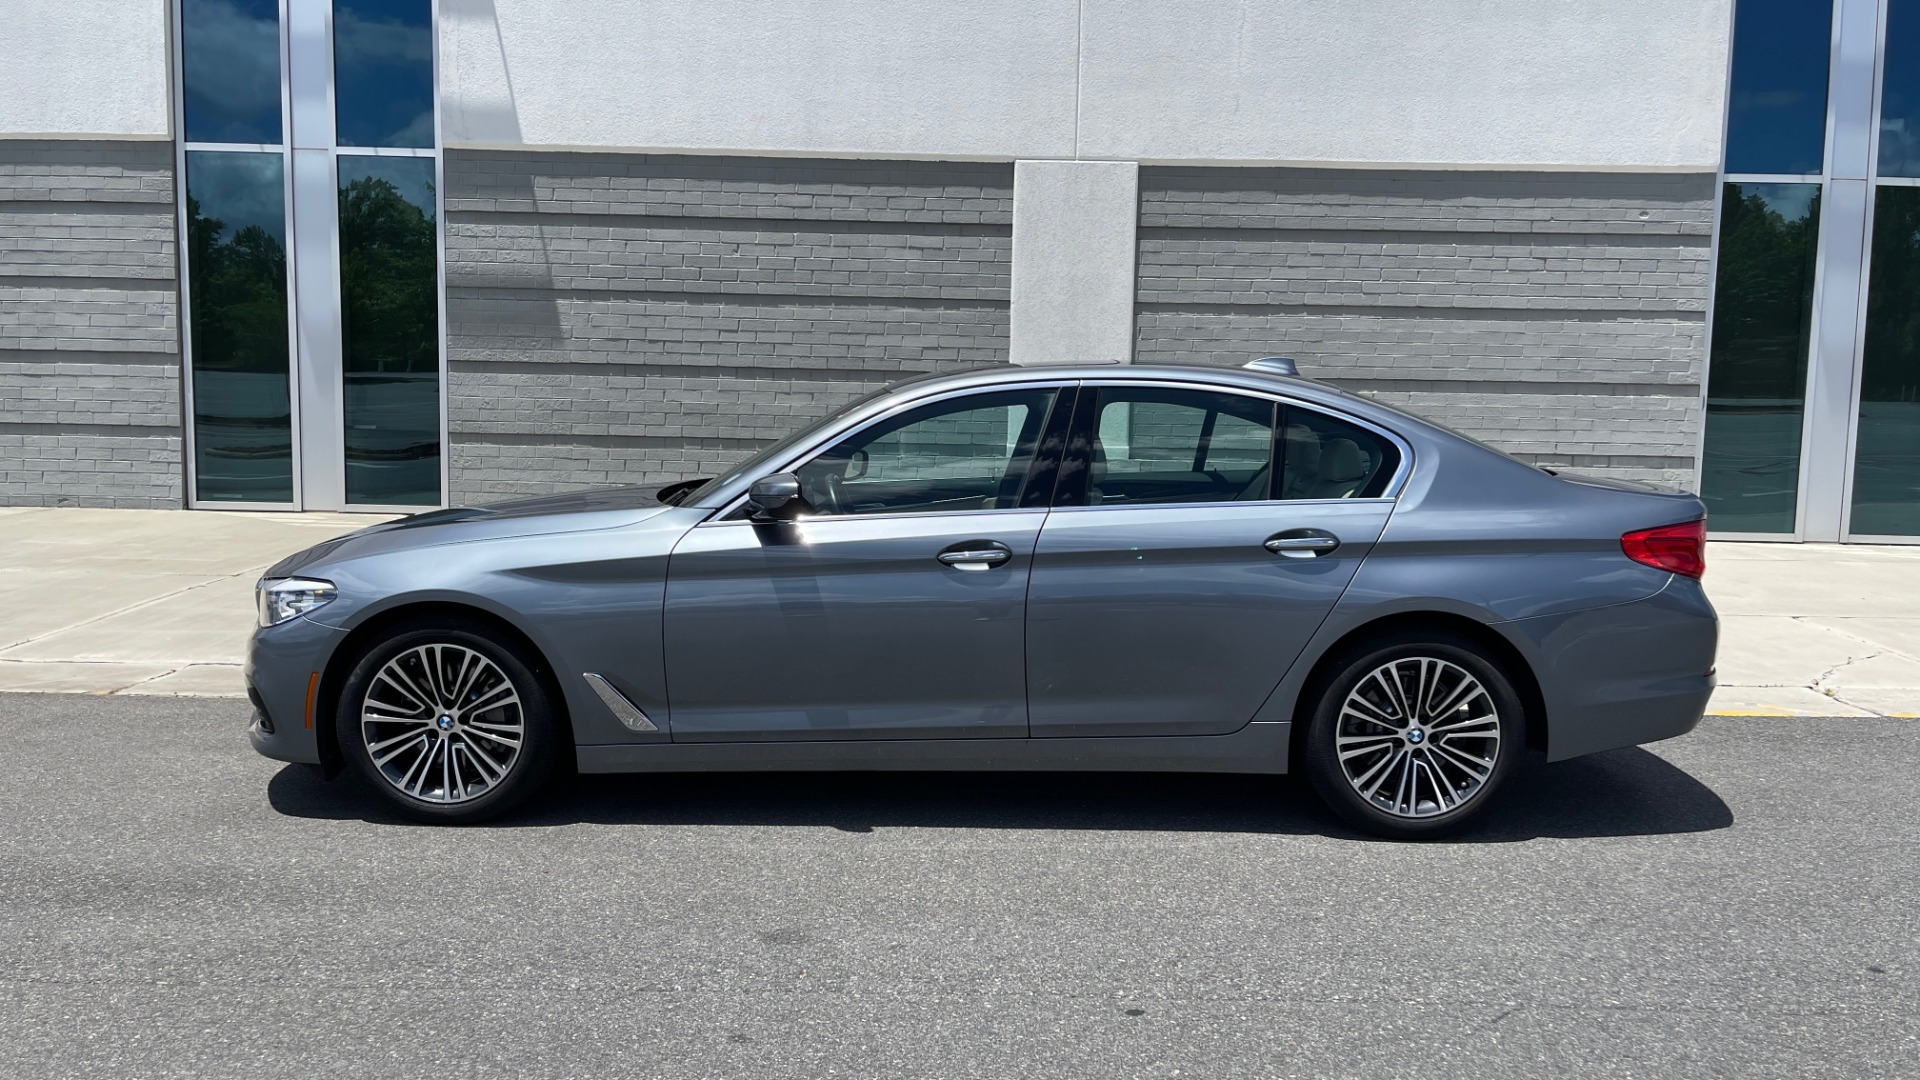 Used 2017 BMW 5 SERIES 530I PREMIUM / WIFI / NAV / SUNROOF / AUTO CLIMATE CONTROL for sale $31,795 at Formula Imports in Charlotte NC 28227 4